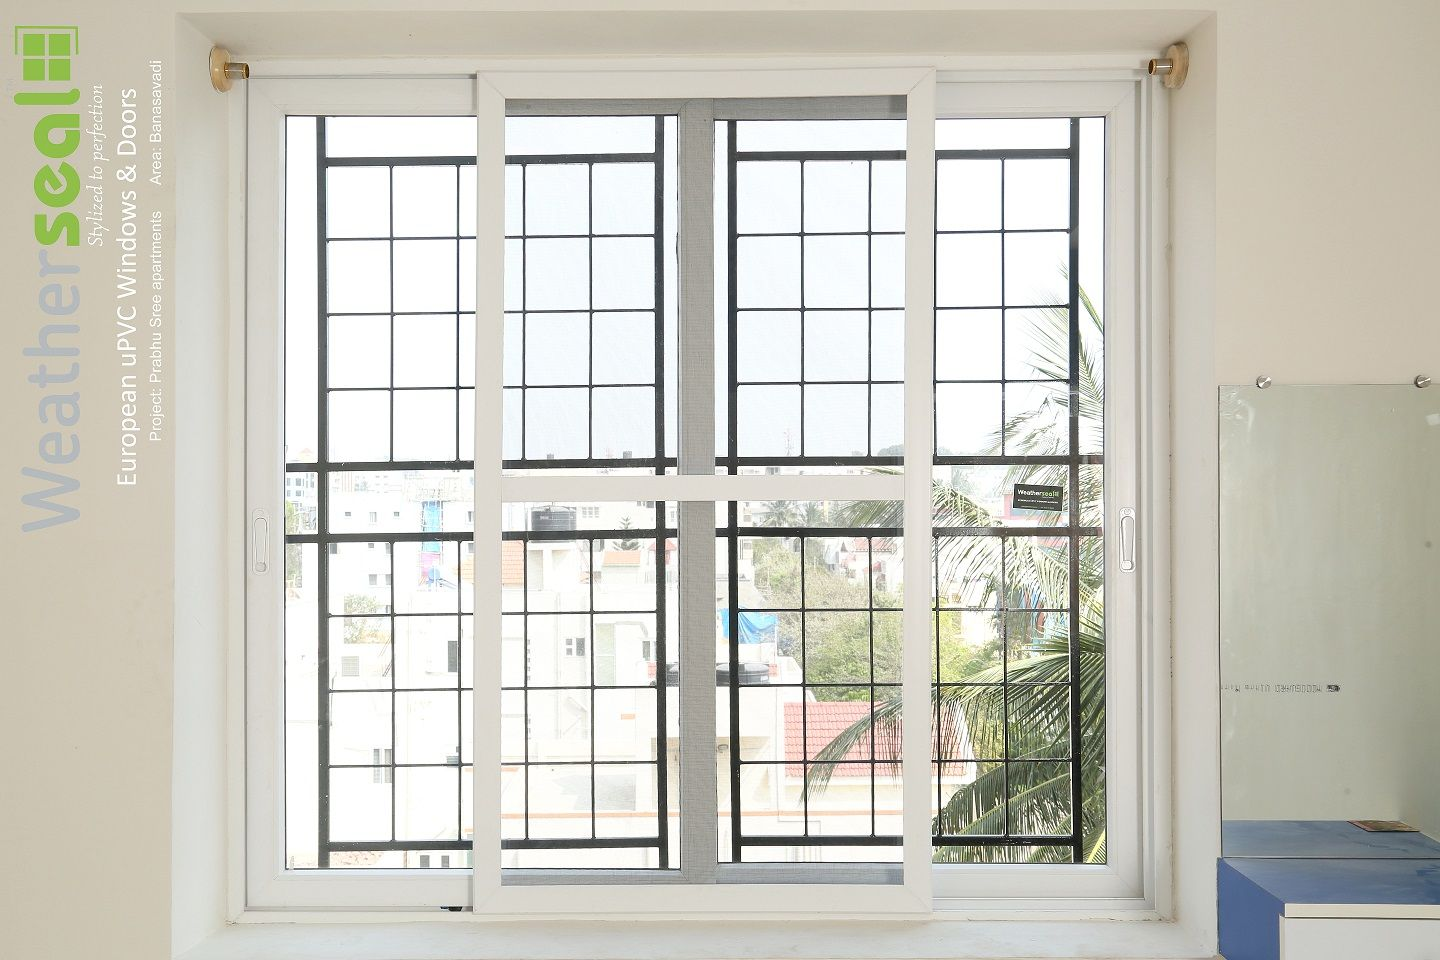 Weatherseal Manufactures Upvc Windows And Doors Upvc Stands For